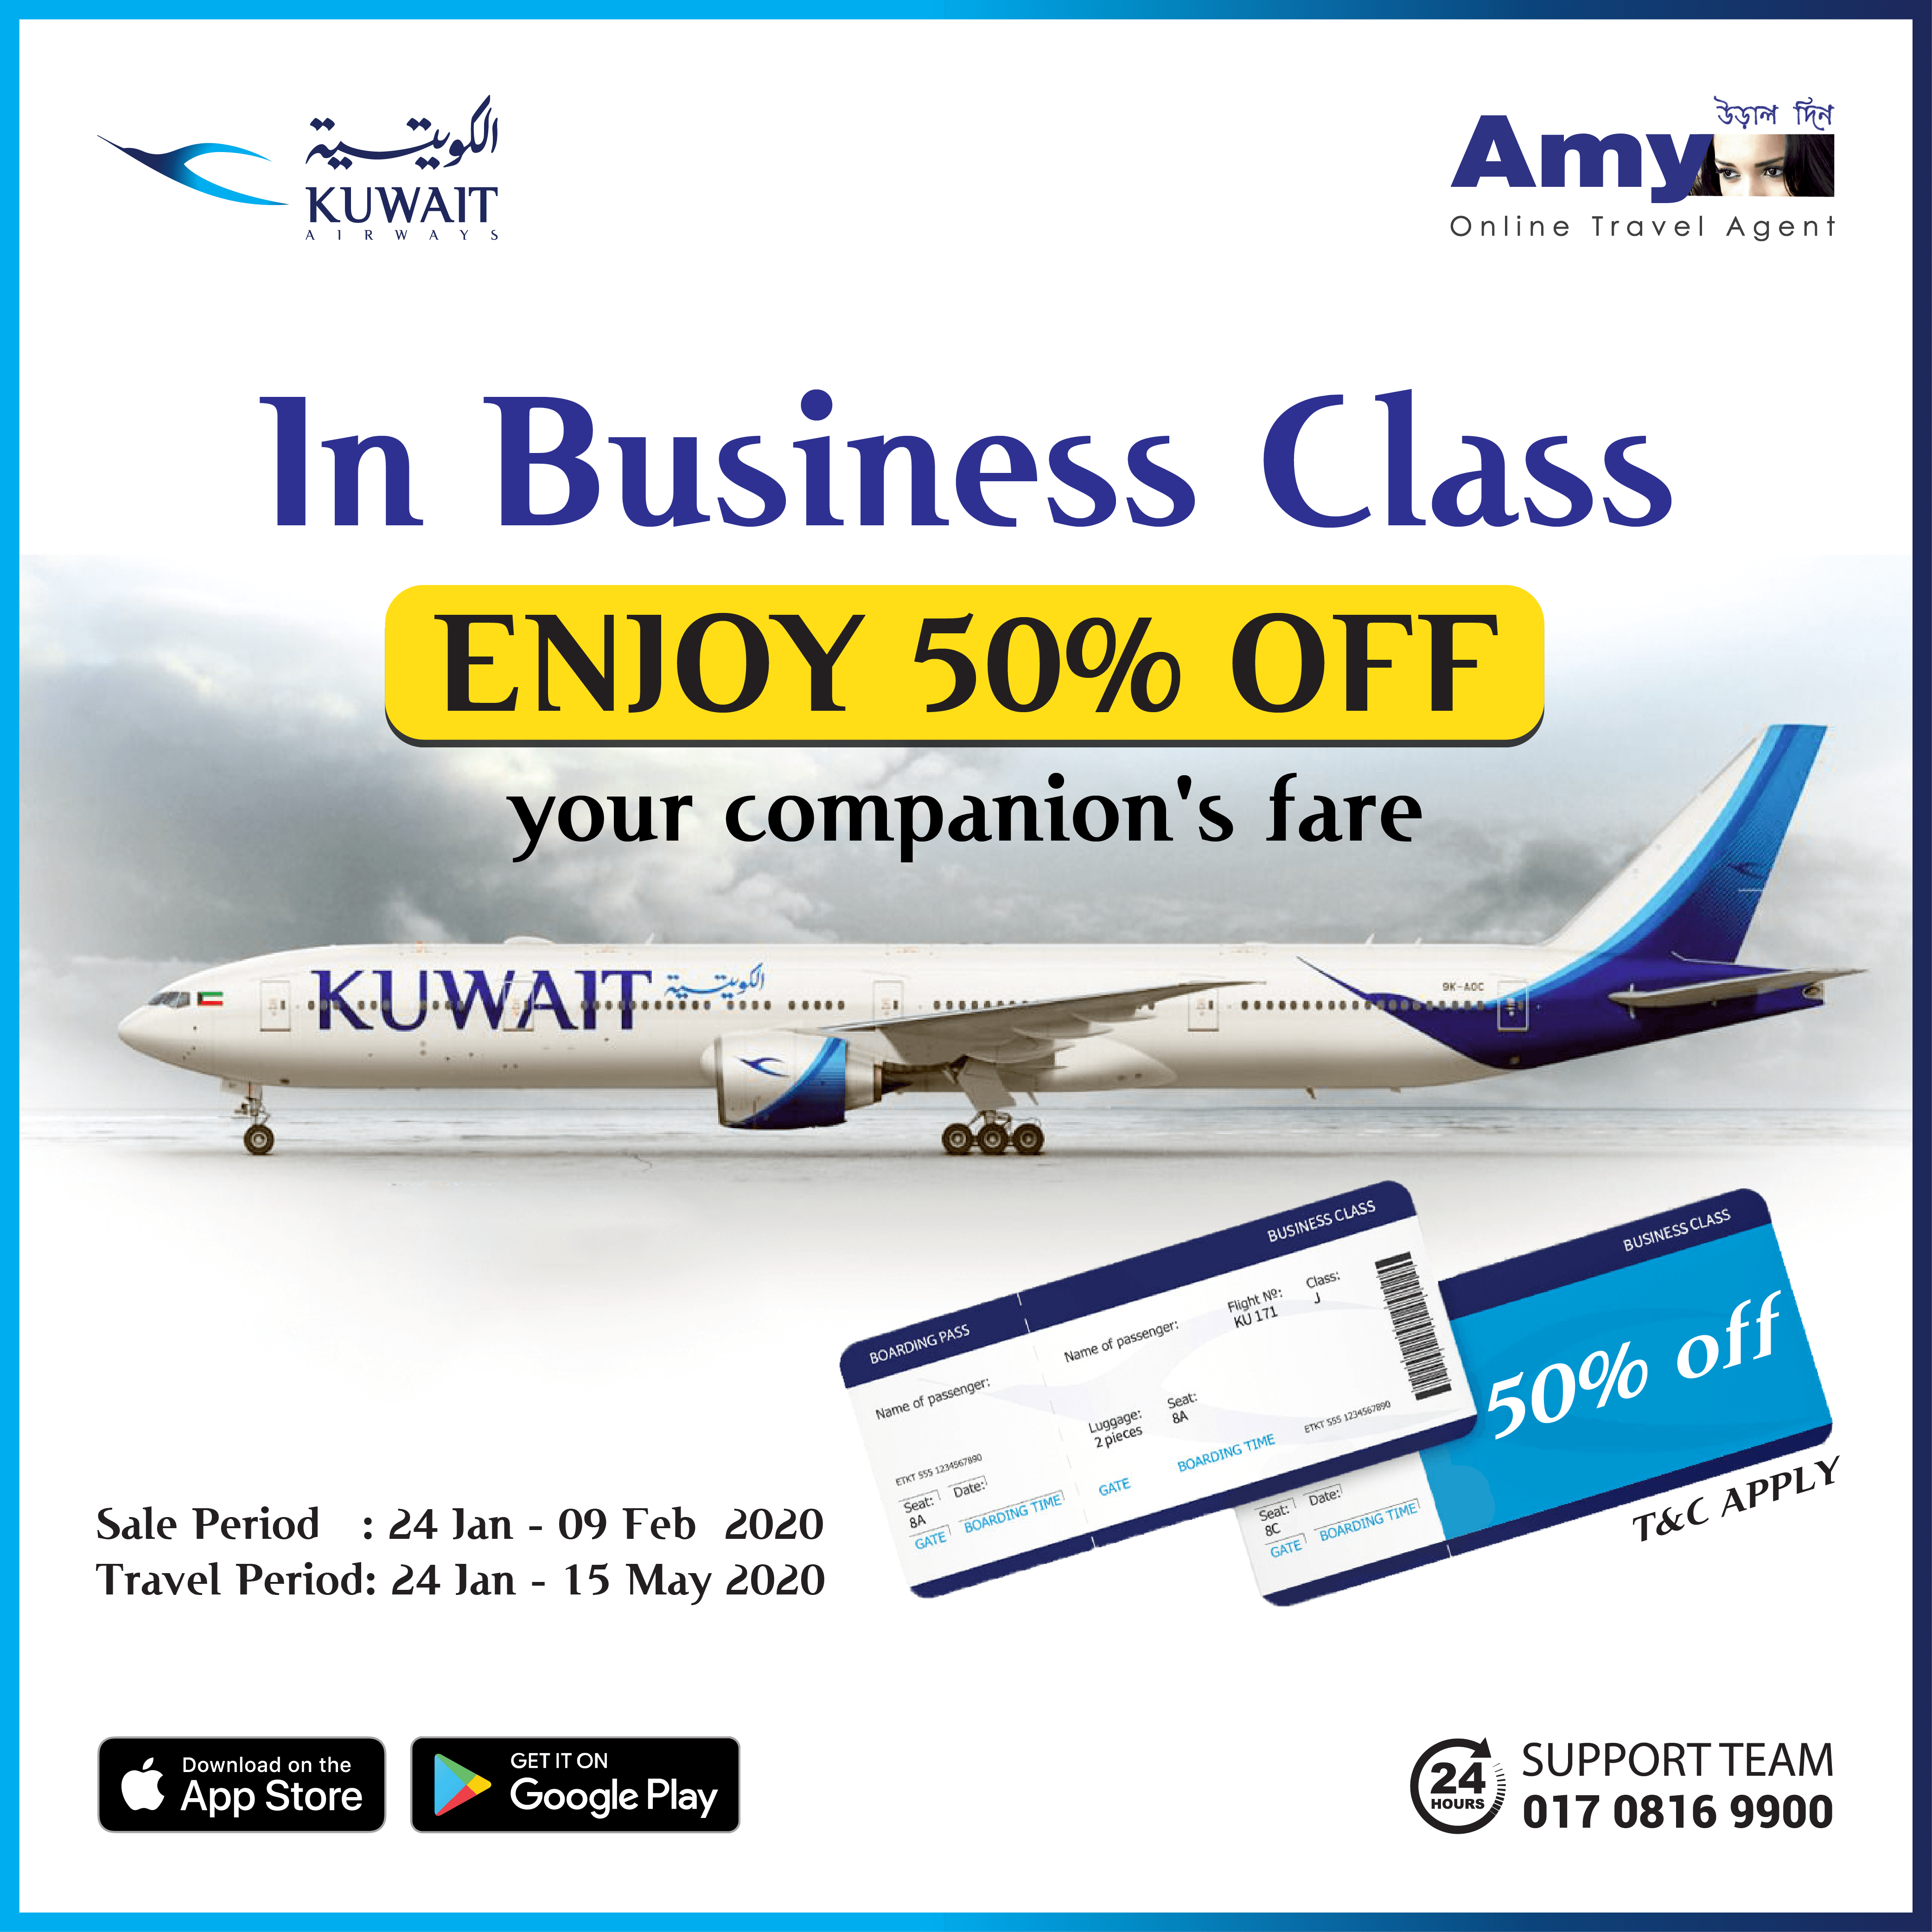 Enjoy 50% off your companion's fare in Business Class Cabin with Kuwait Airways.  #Offer #Discount #BestDeal #BestPrice #CheapAirTicket #BusinessClass #KuwaitAirways #Amy